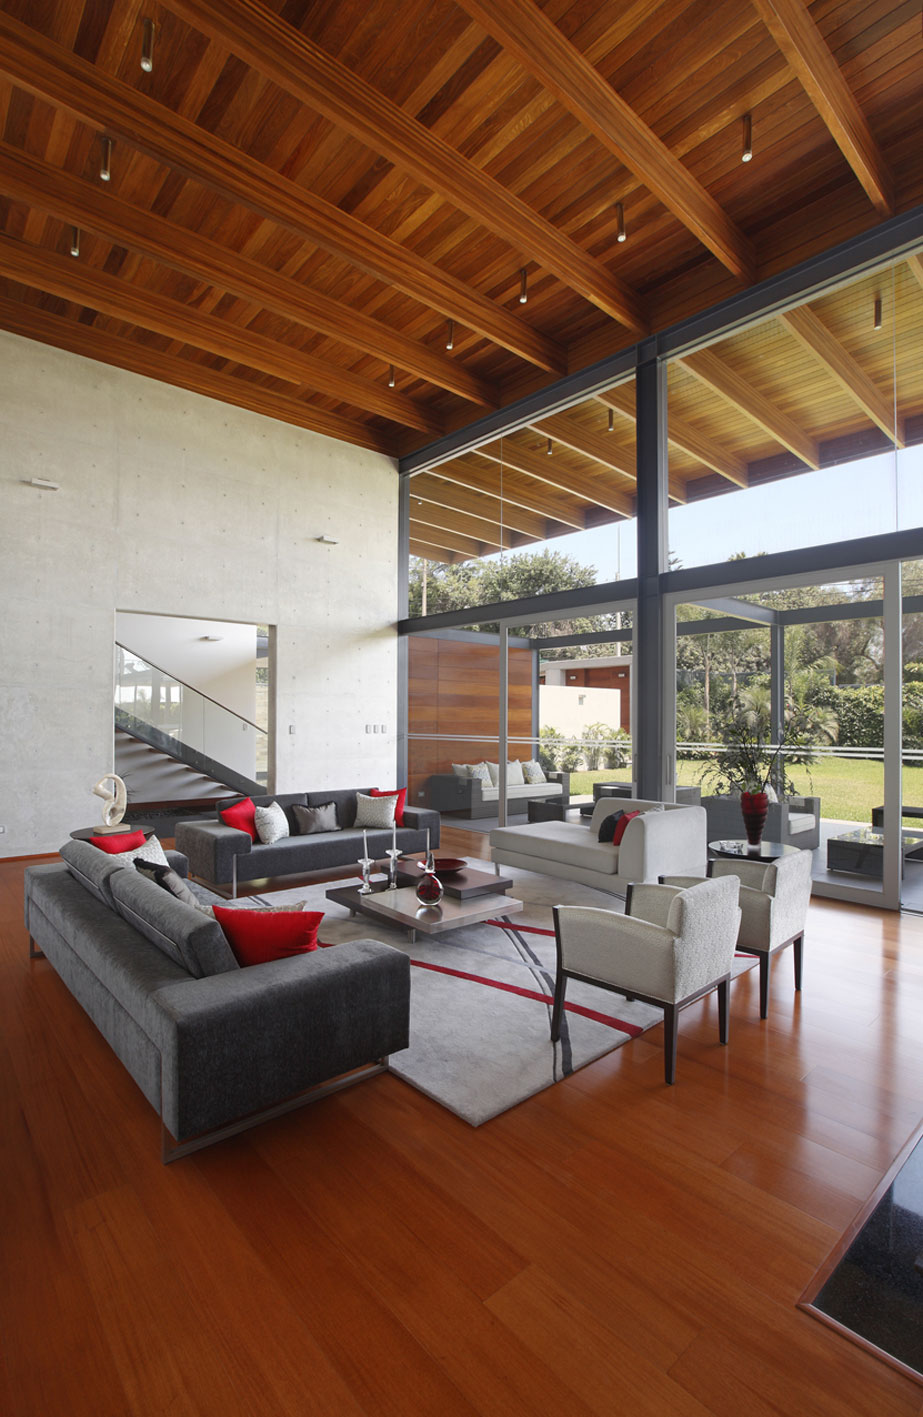 Rug, Sofas, Coffee Table, Wooden Flooring, Imposing Family Home in Lima, Peru